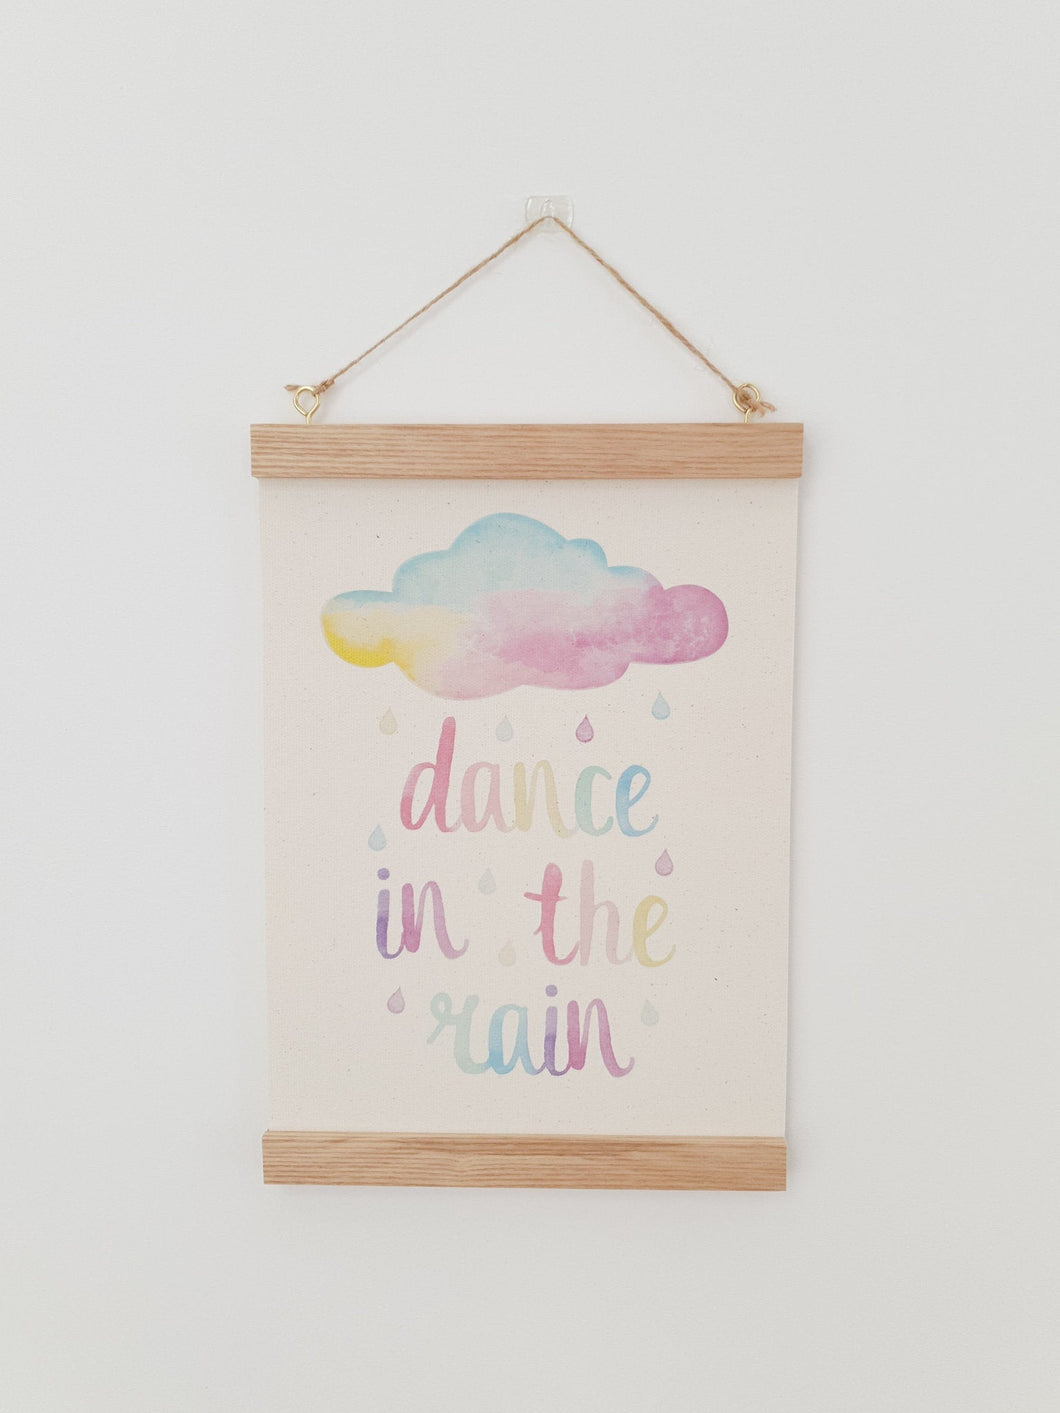 Rainbow Cloud canvas print with wooden hanger - Cloud nursery accessory - Cloud bedroom accessory - Print hanger - Dance in the rain print